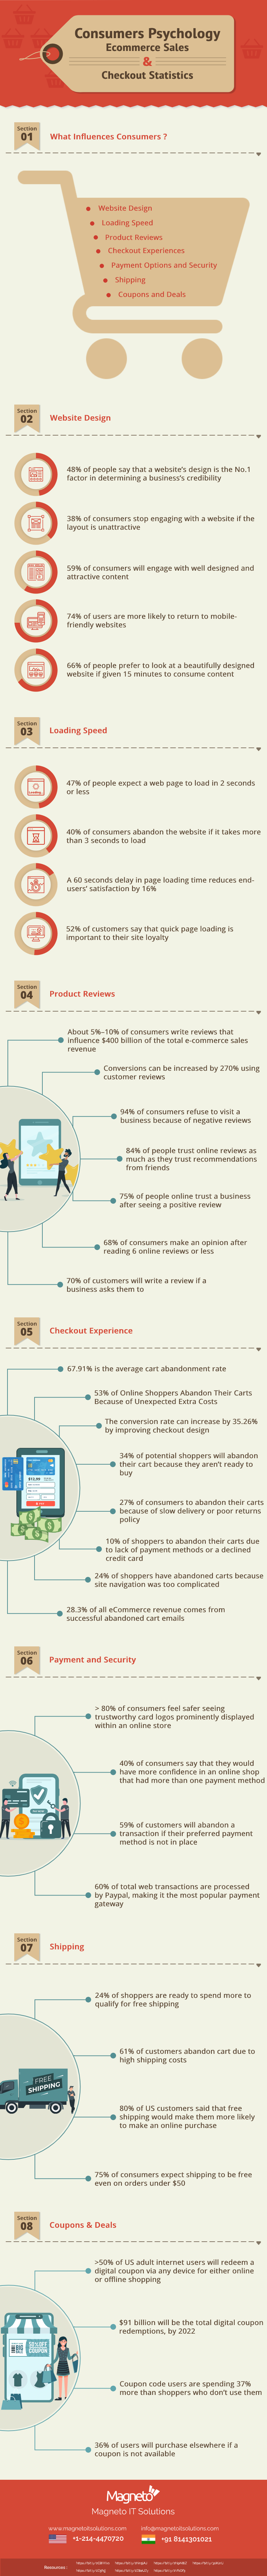 Consumers Psychology - Ecommerce Sales Infographic